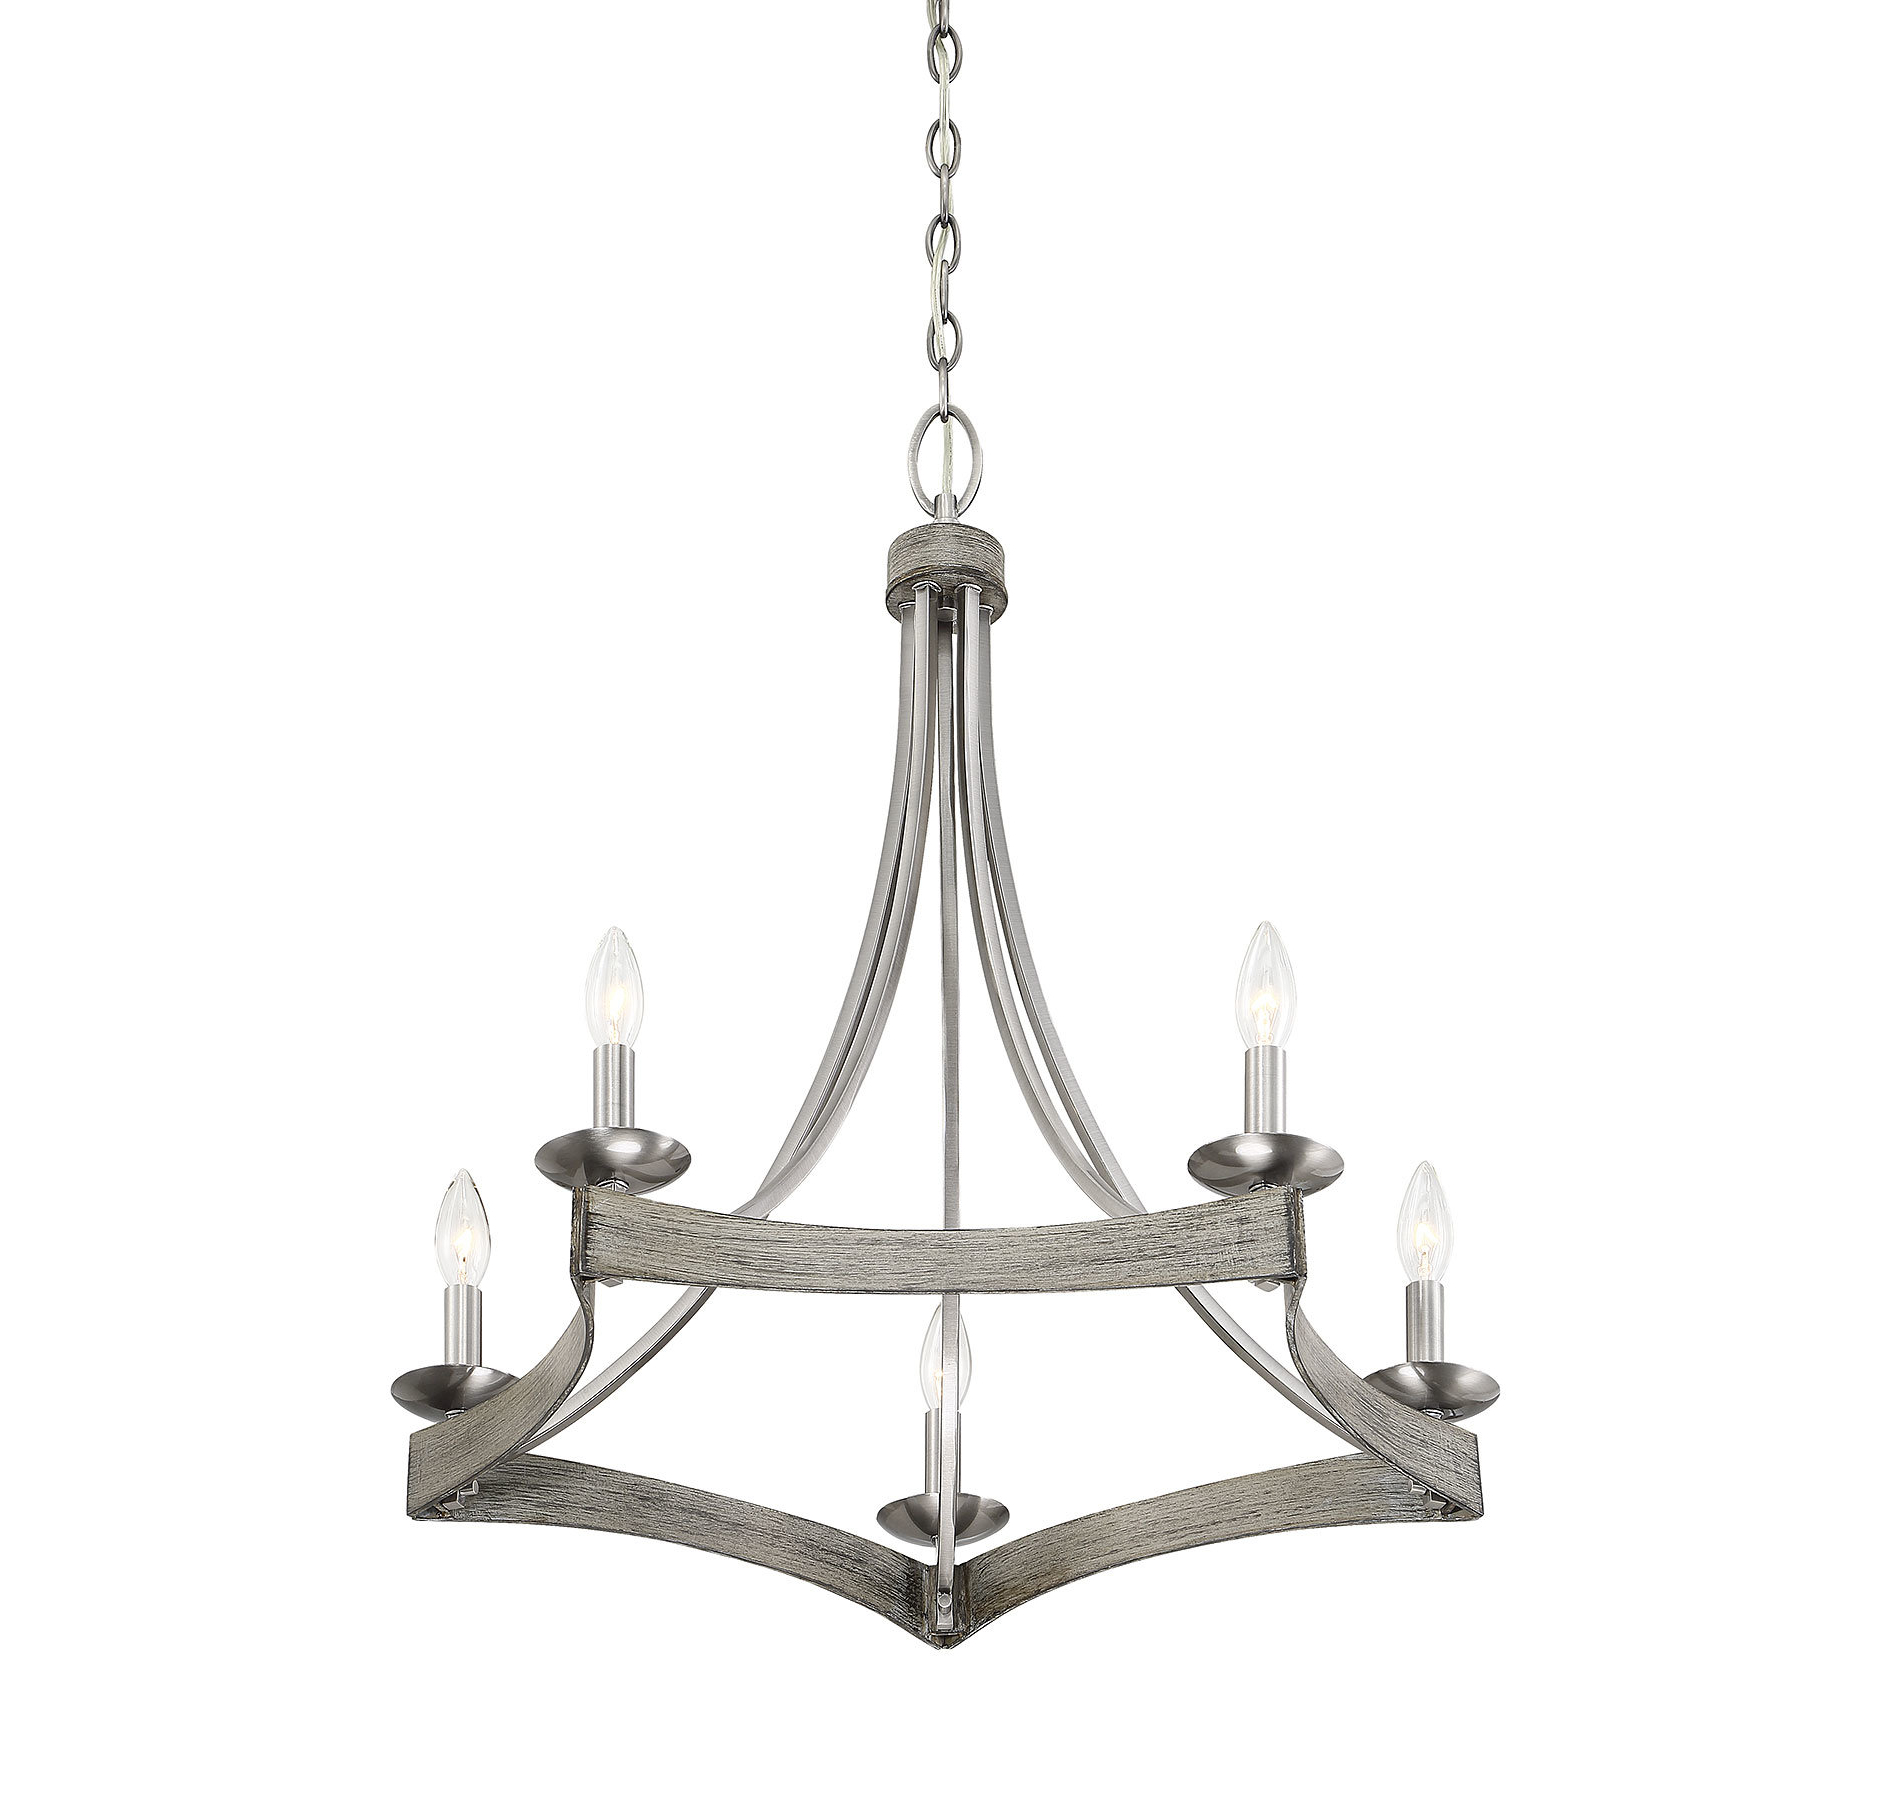 Fashionable Berger 5 Light Candle Style Chandeliers Regarding Unger 5 Light Candle Style Chandelier (Gallery 3 of 20)